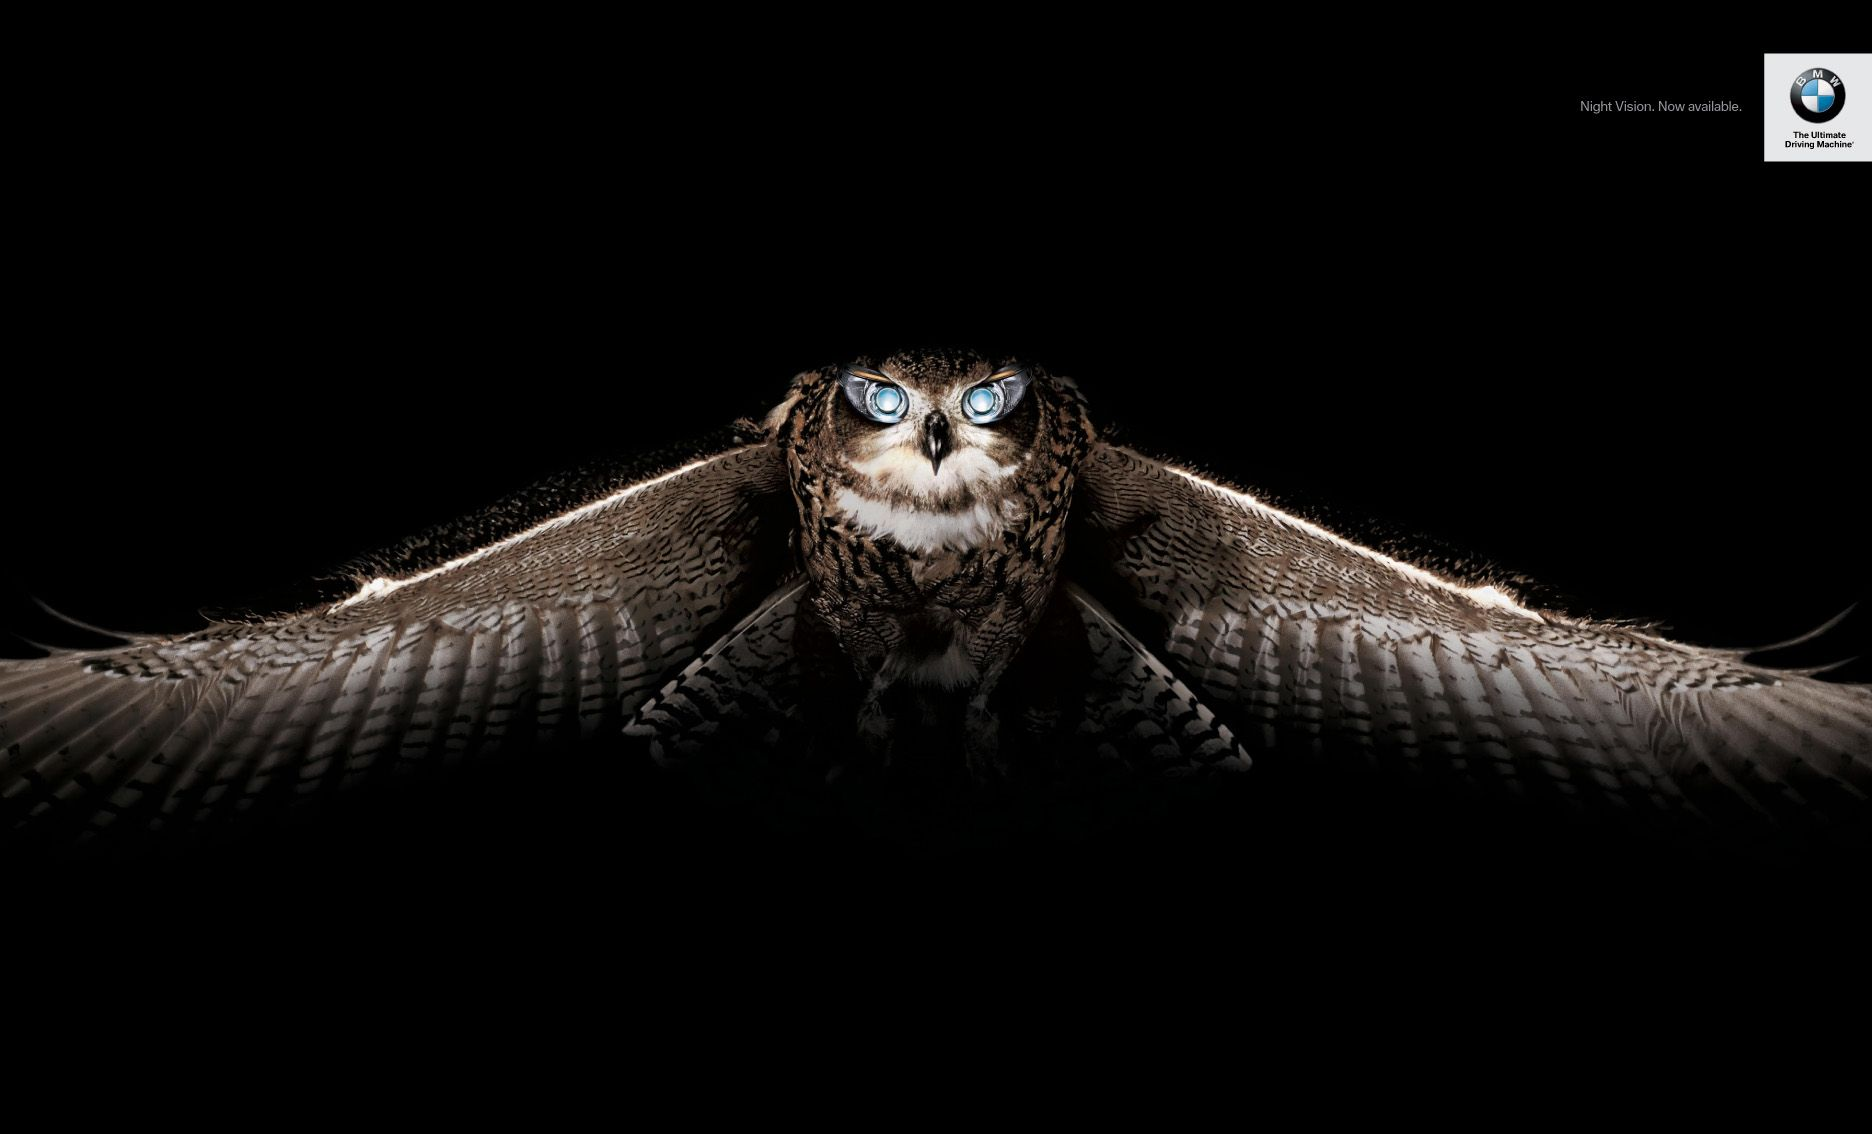 BMW's Night Vision owl ad